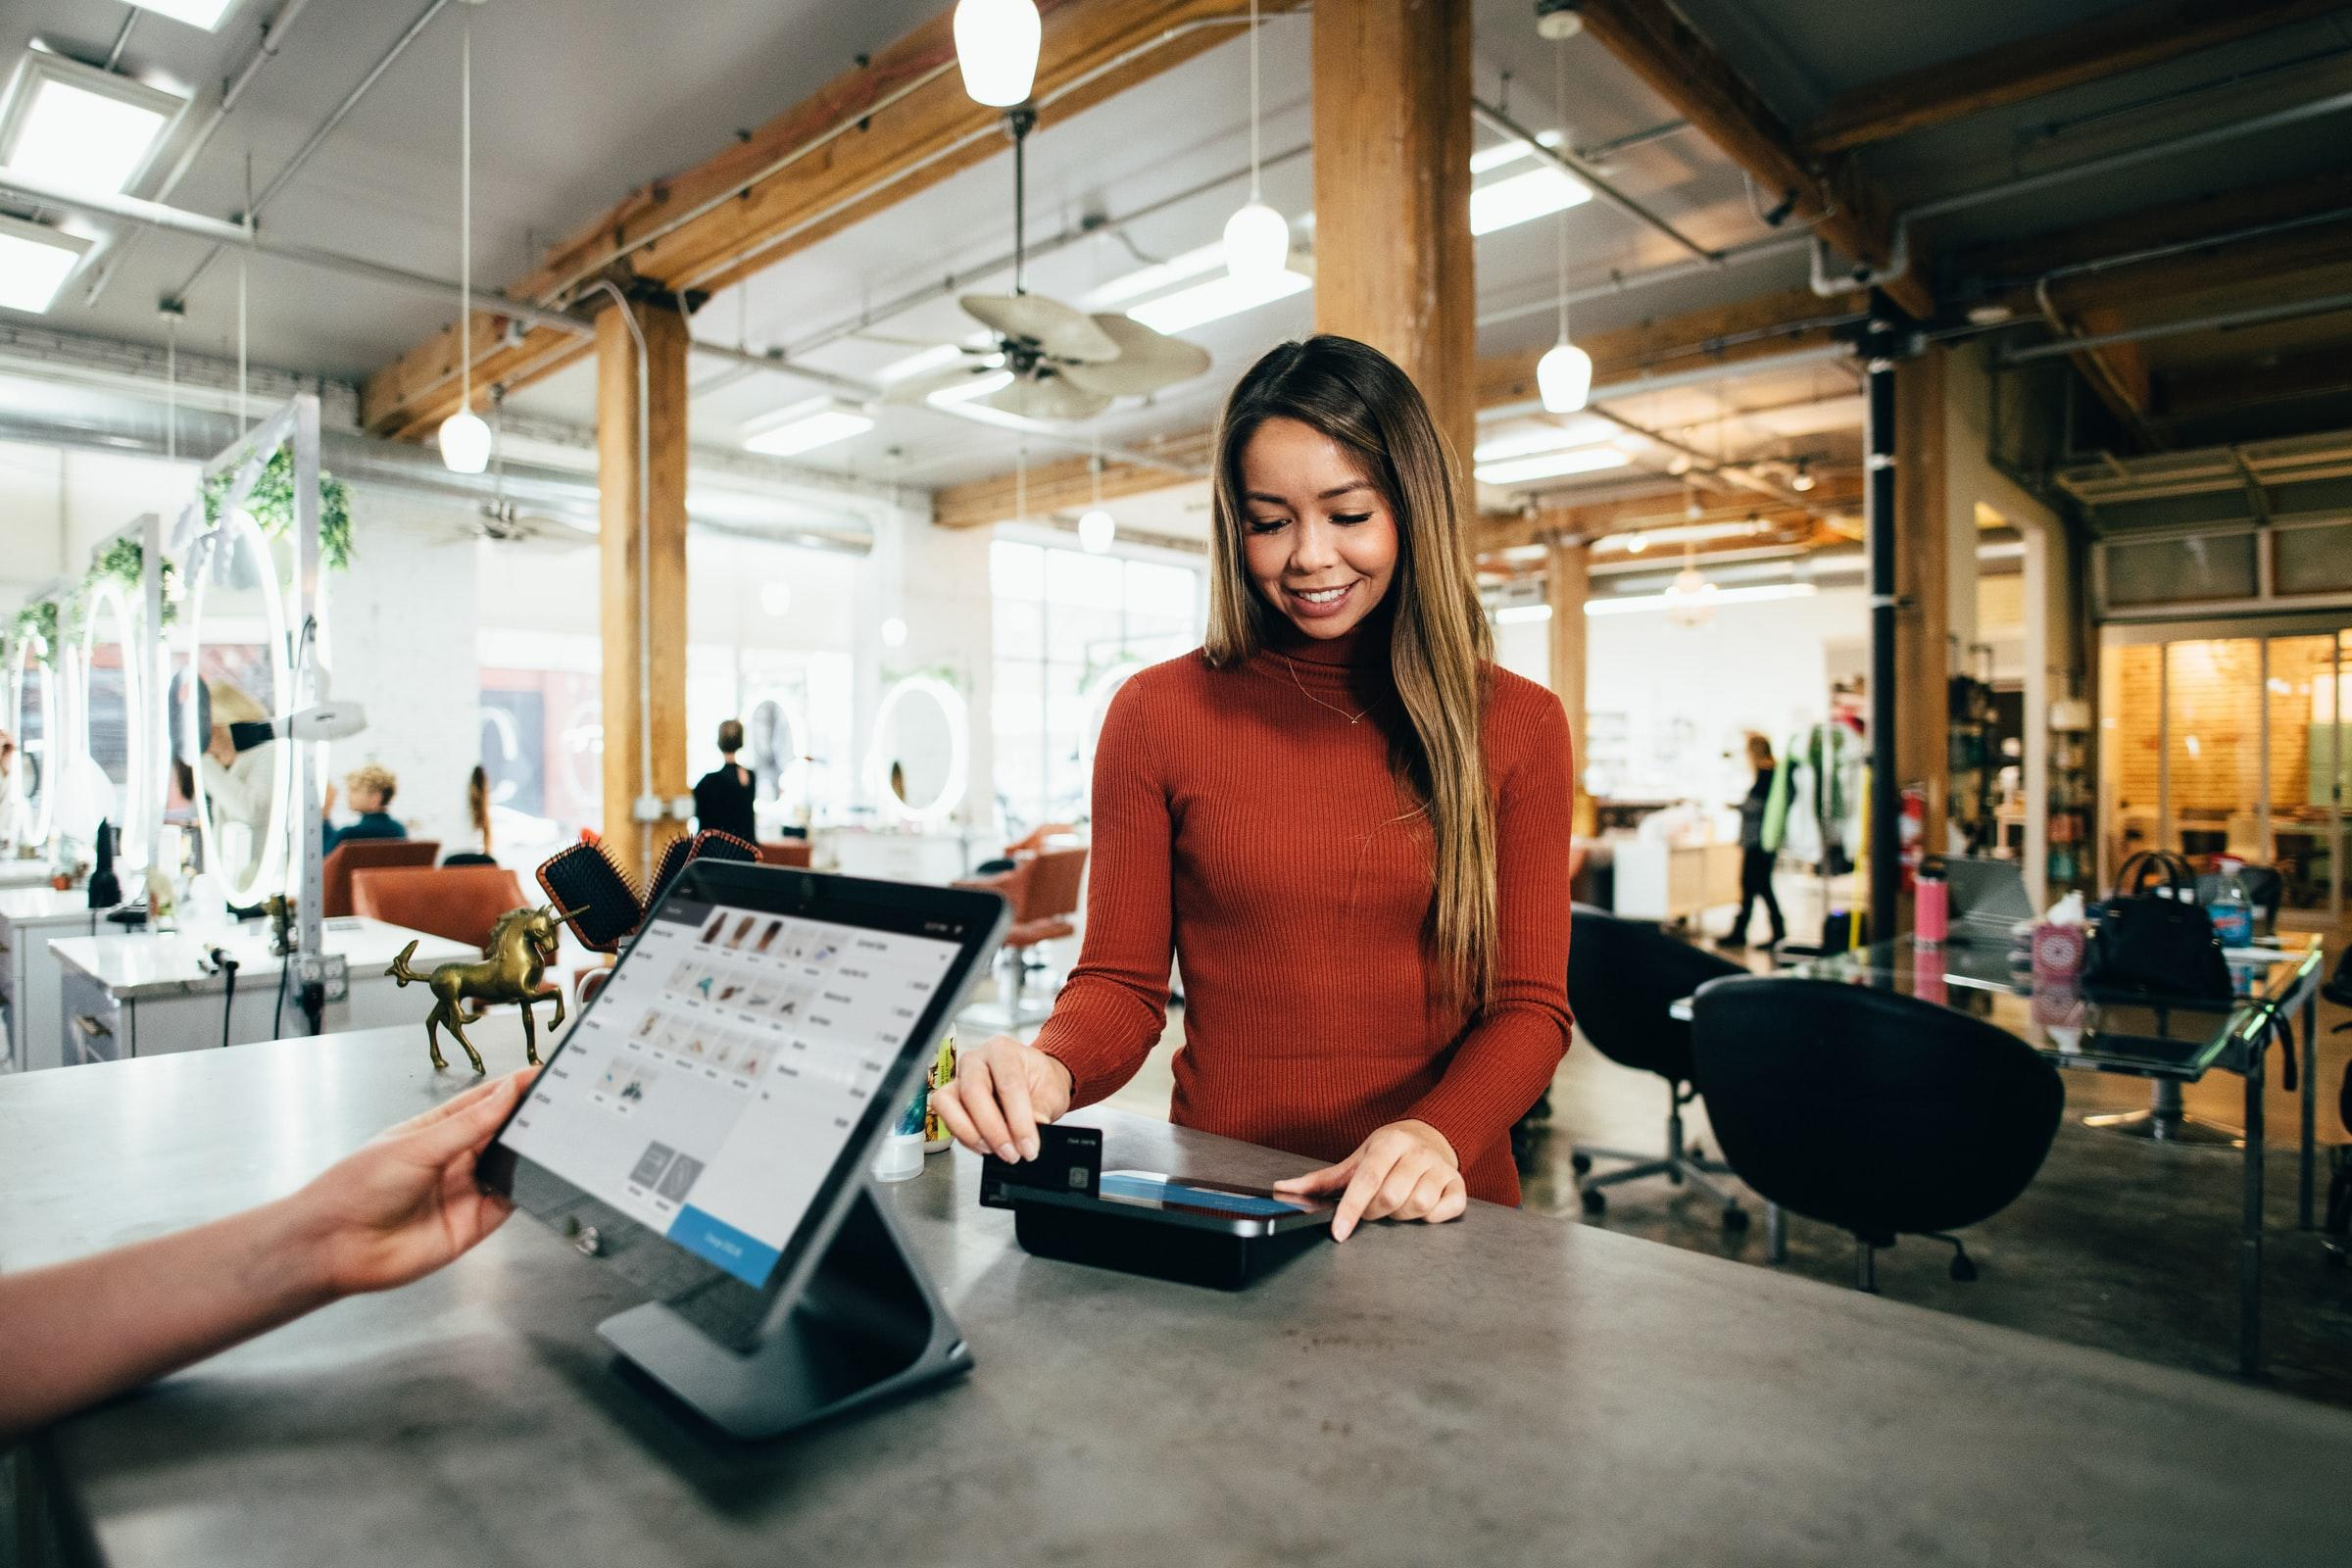 Woman using a payment machine